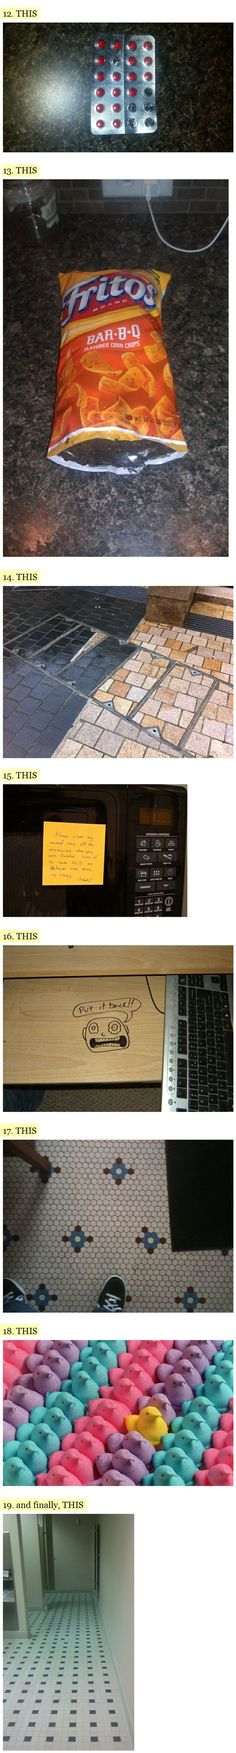 How OCD Are You Ocd Random And Stuffing - 27 images that will push anyone with ocd over the edge